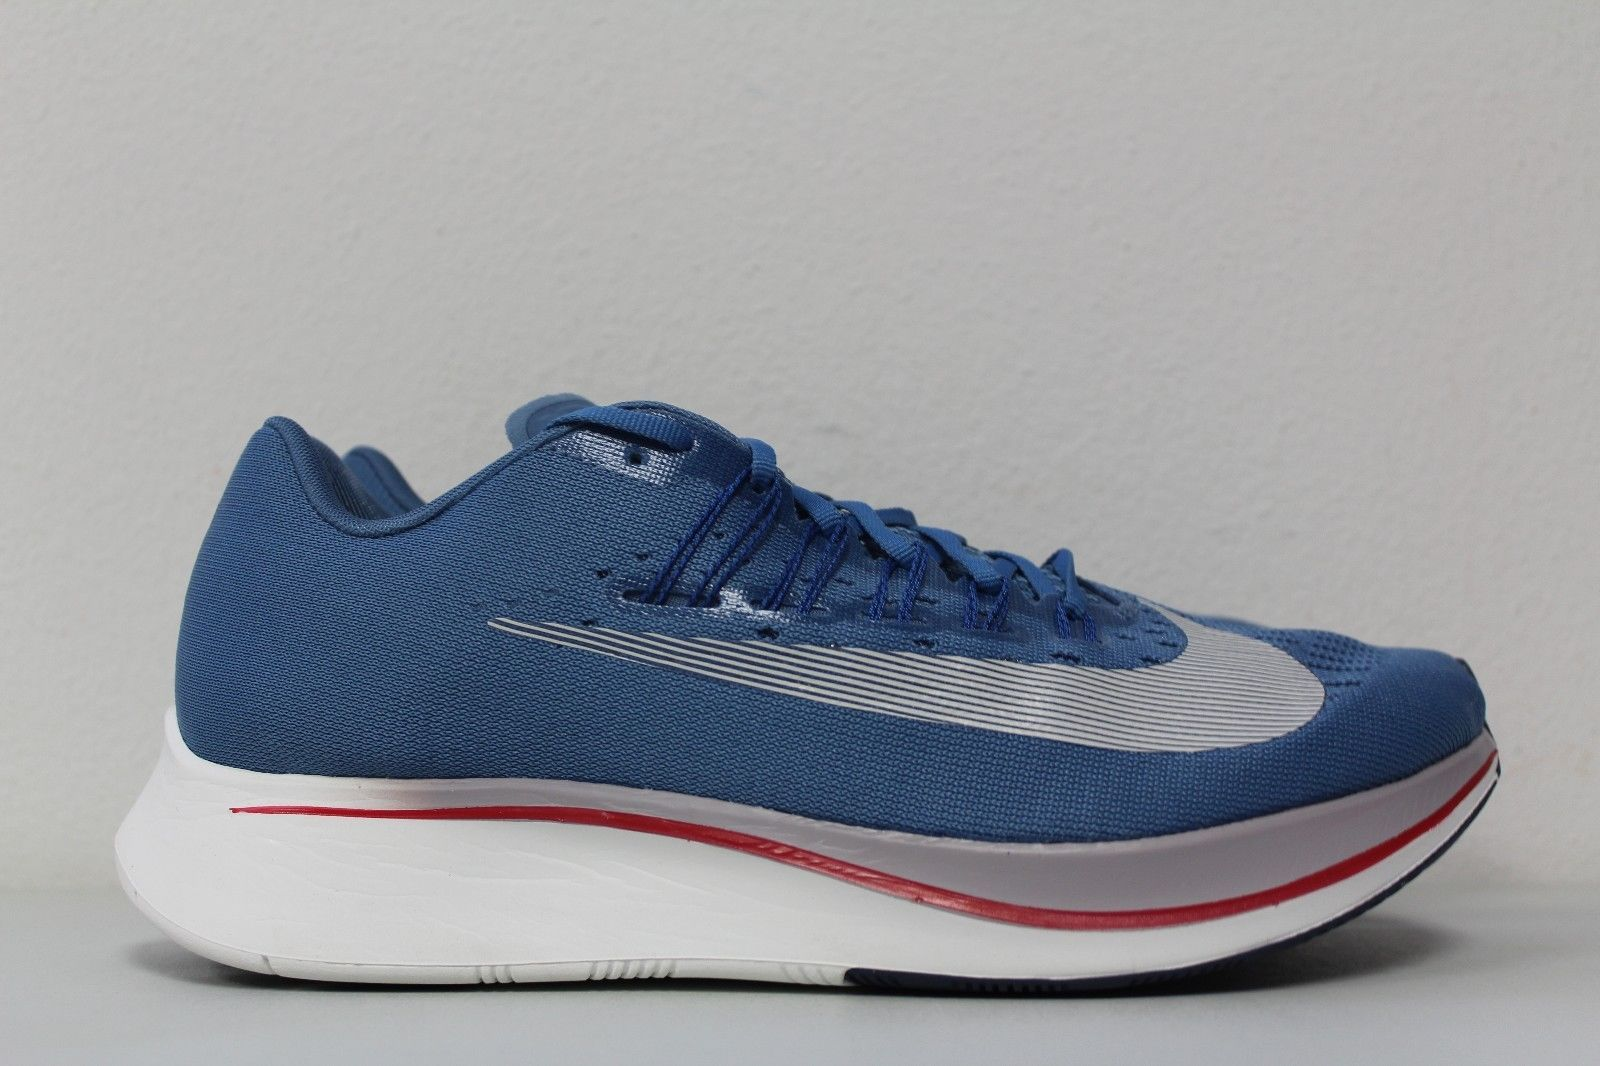 New Nike Zoom Fly Agean Storm Blue White Running Shoes 880848-402 Size 10.5